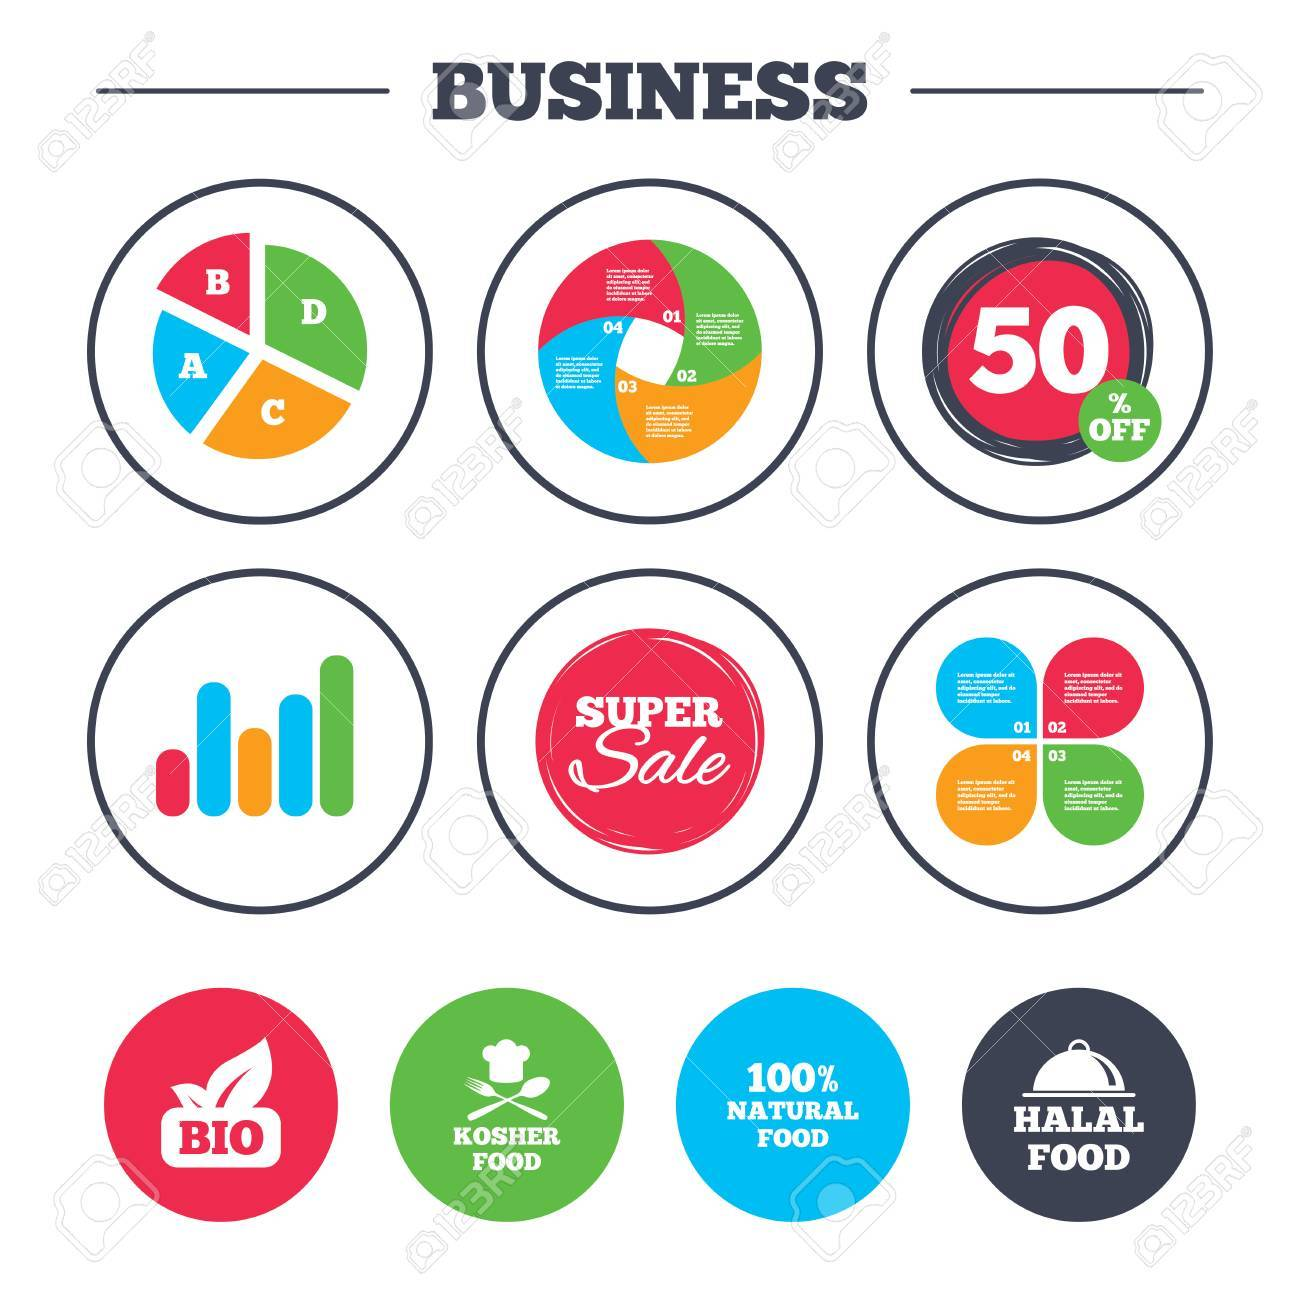 Business pie chart growth graph 100 natural bio food icons business pie chart growth graph 100 natural bio food icons halal and geenschuldenfo Gallery